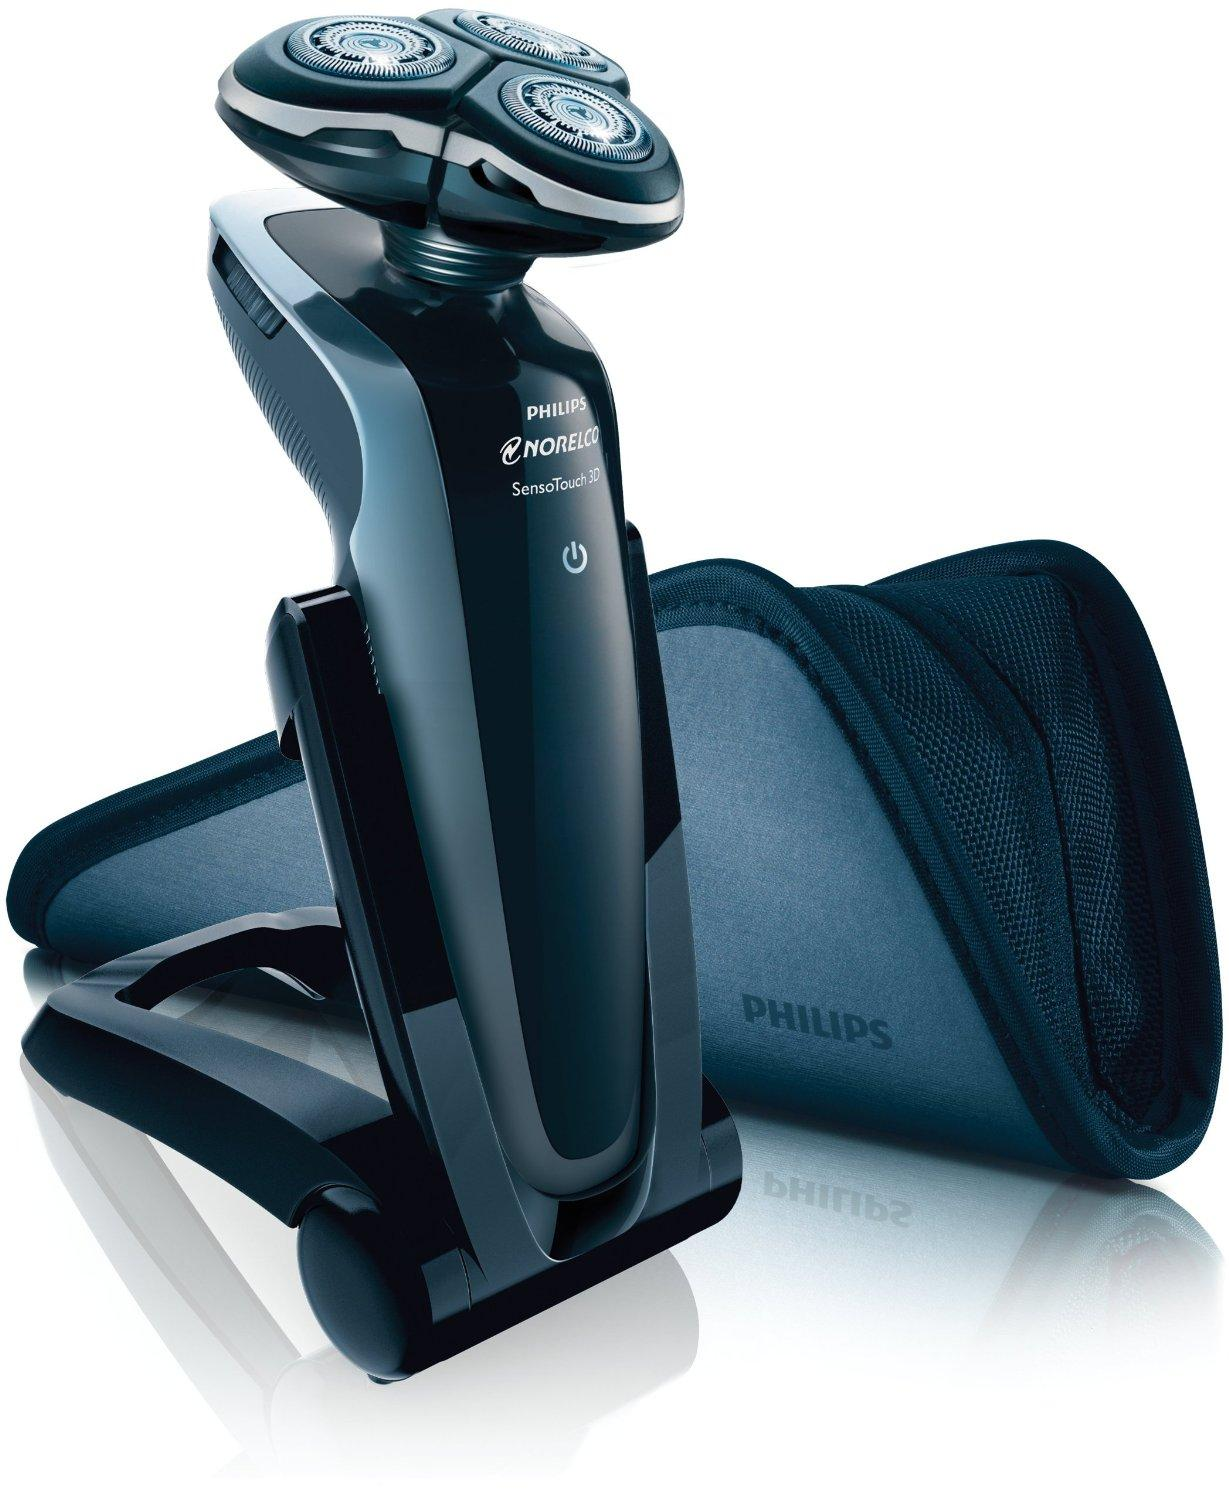 Philips Norelco 1290X/40 Shaver 8800